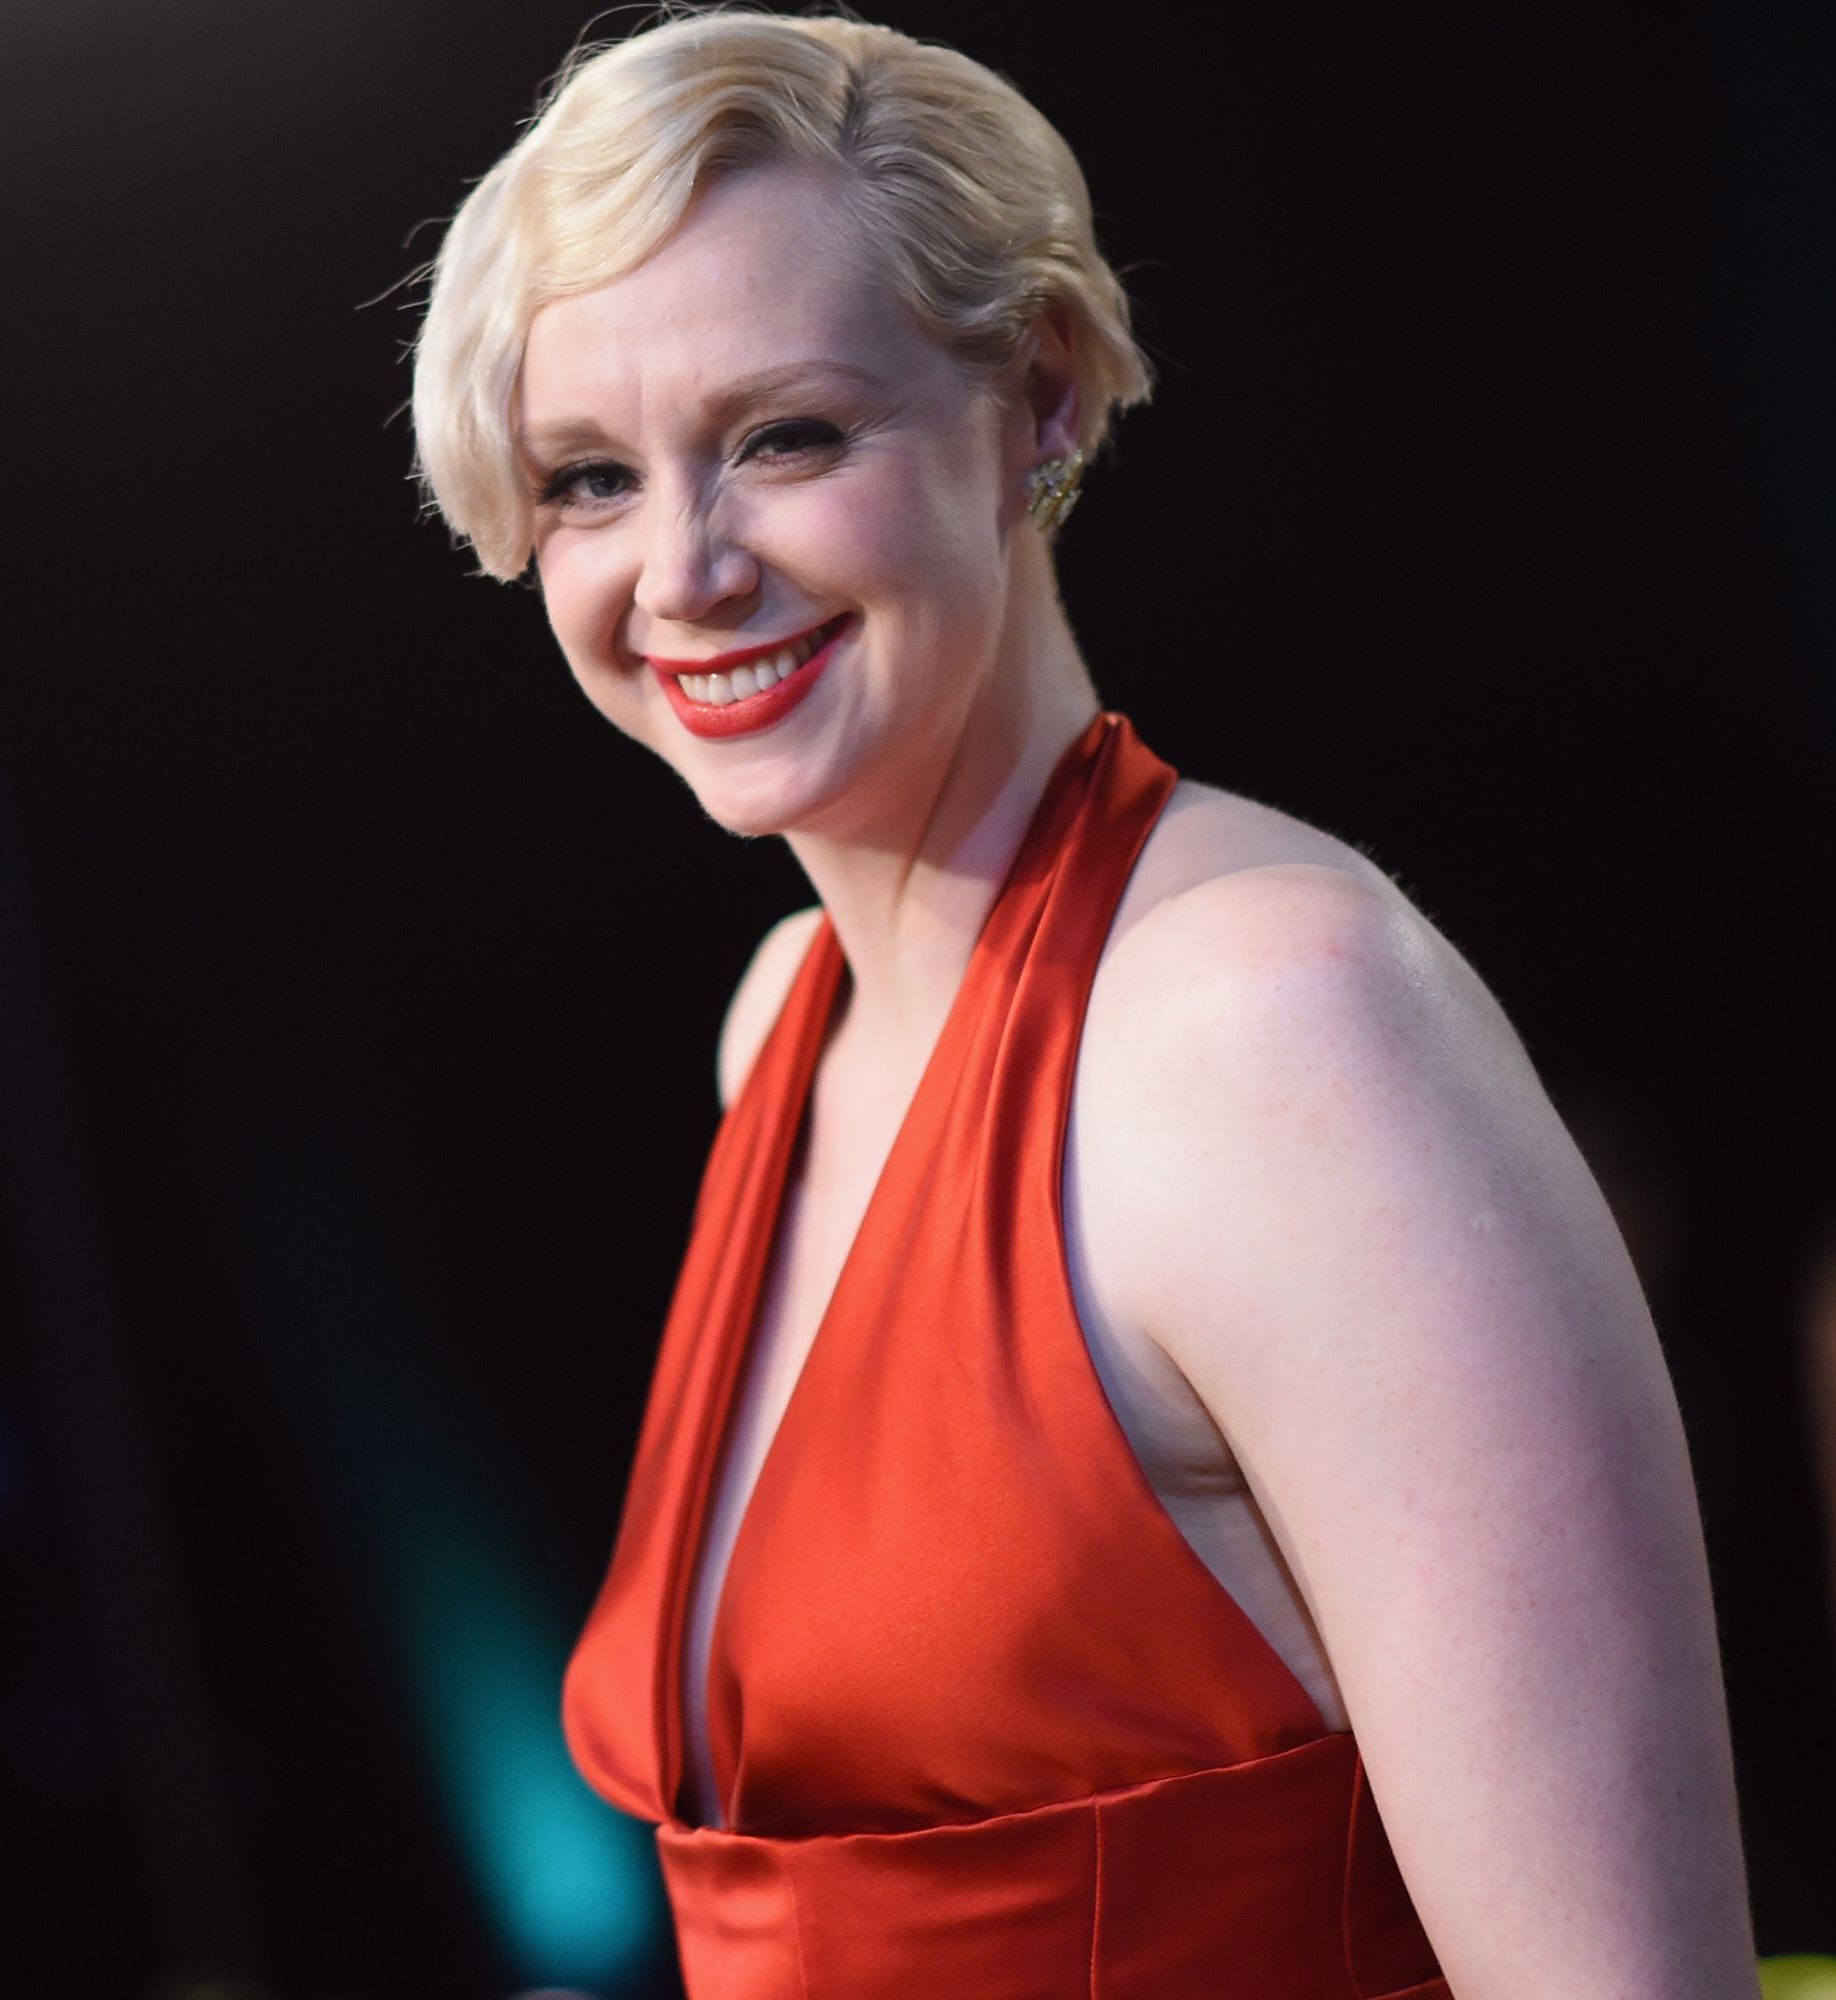 gwen 5 20 Things You Didn't Know About Gwendoline Christie